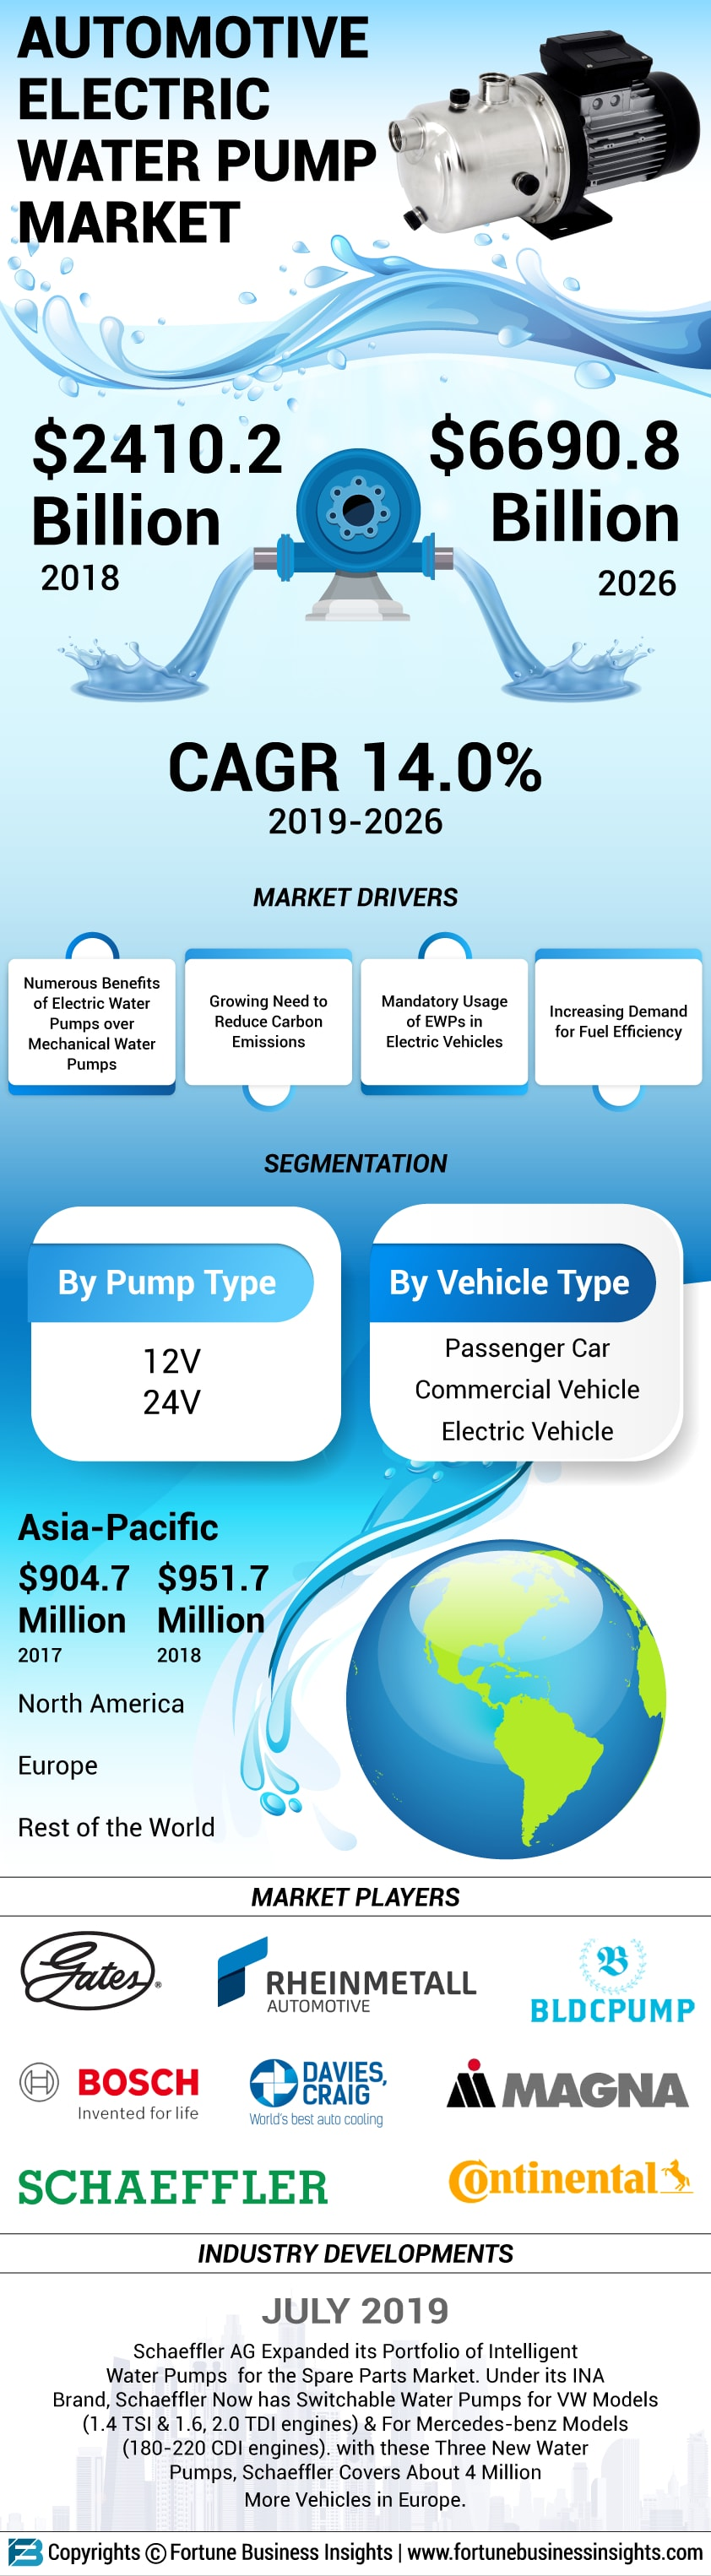 Automotive Electric Water Pump Market